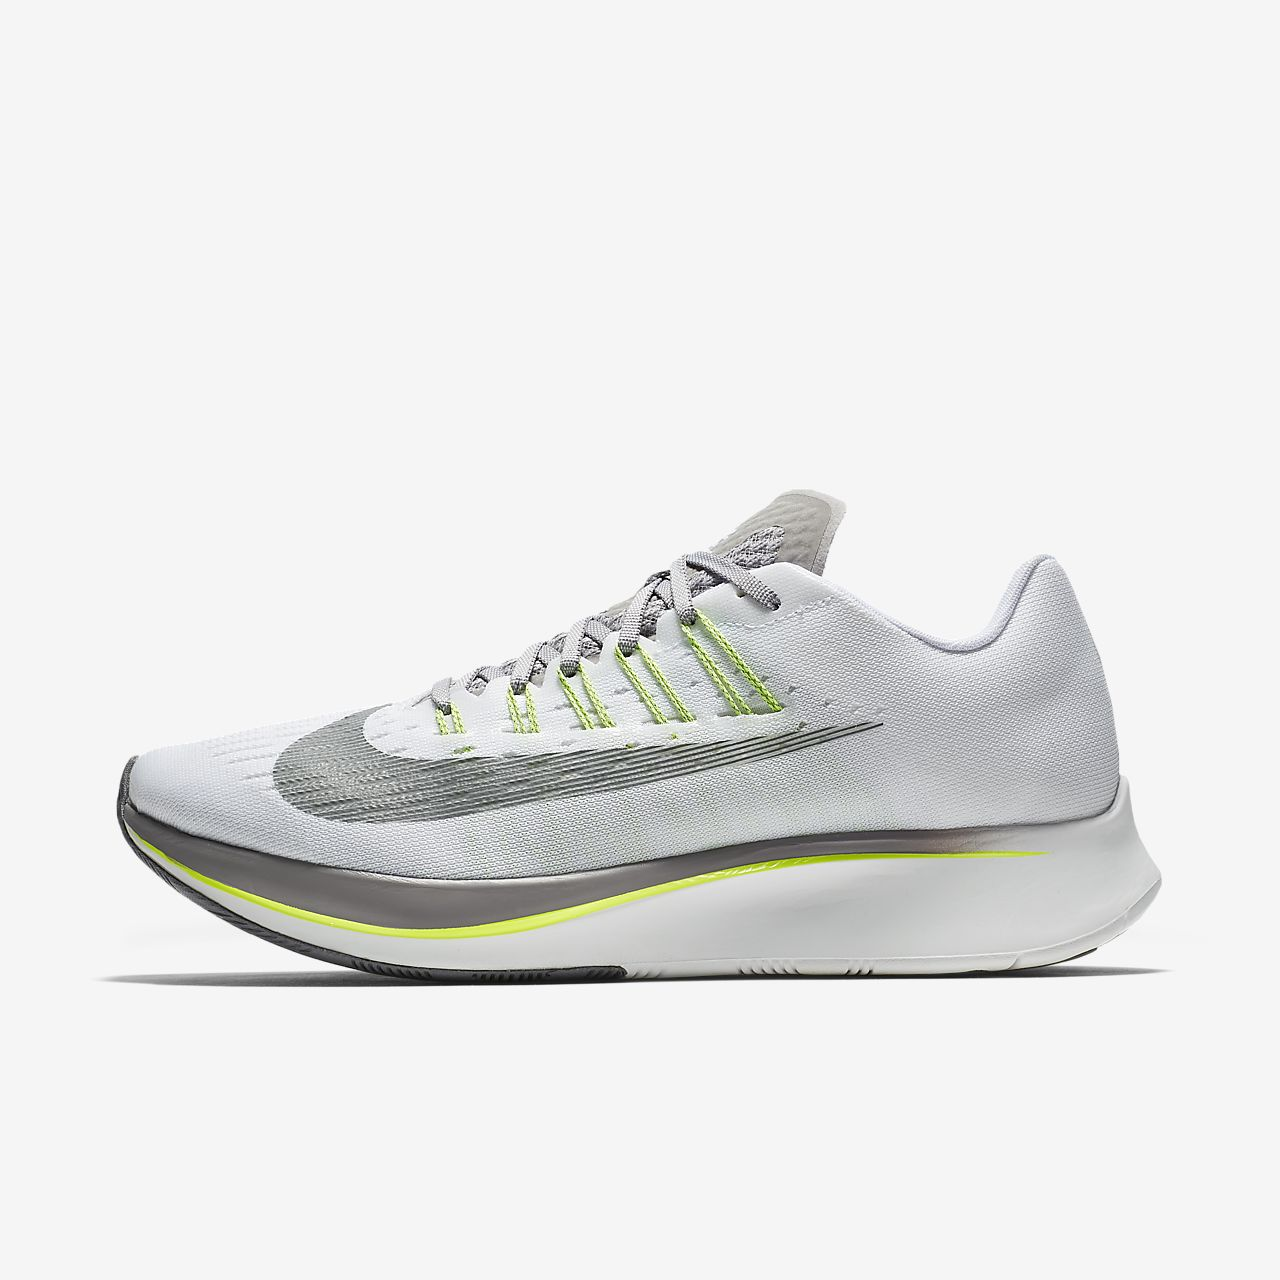 sports shoes e2e68 273d6 ... Nike Zoom Fly Men s Running Shoe